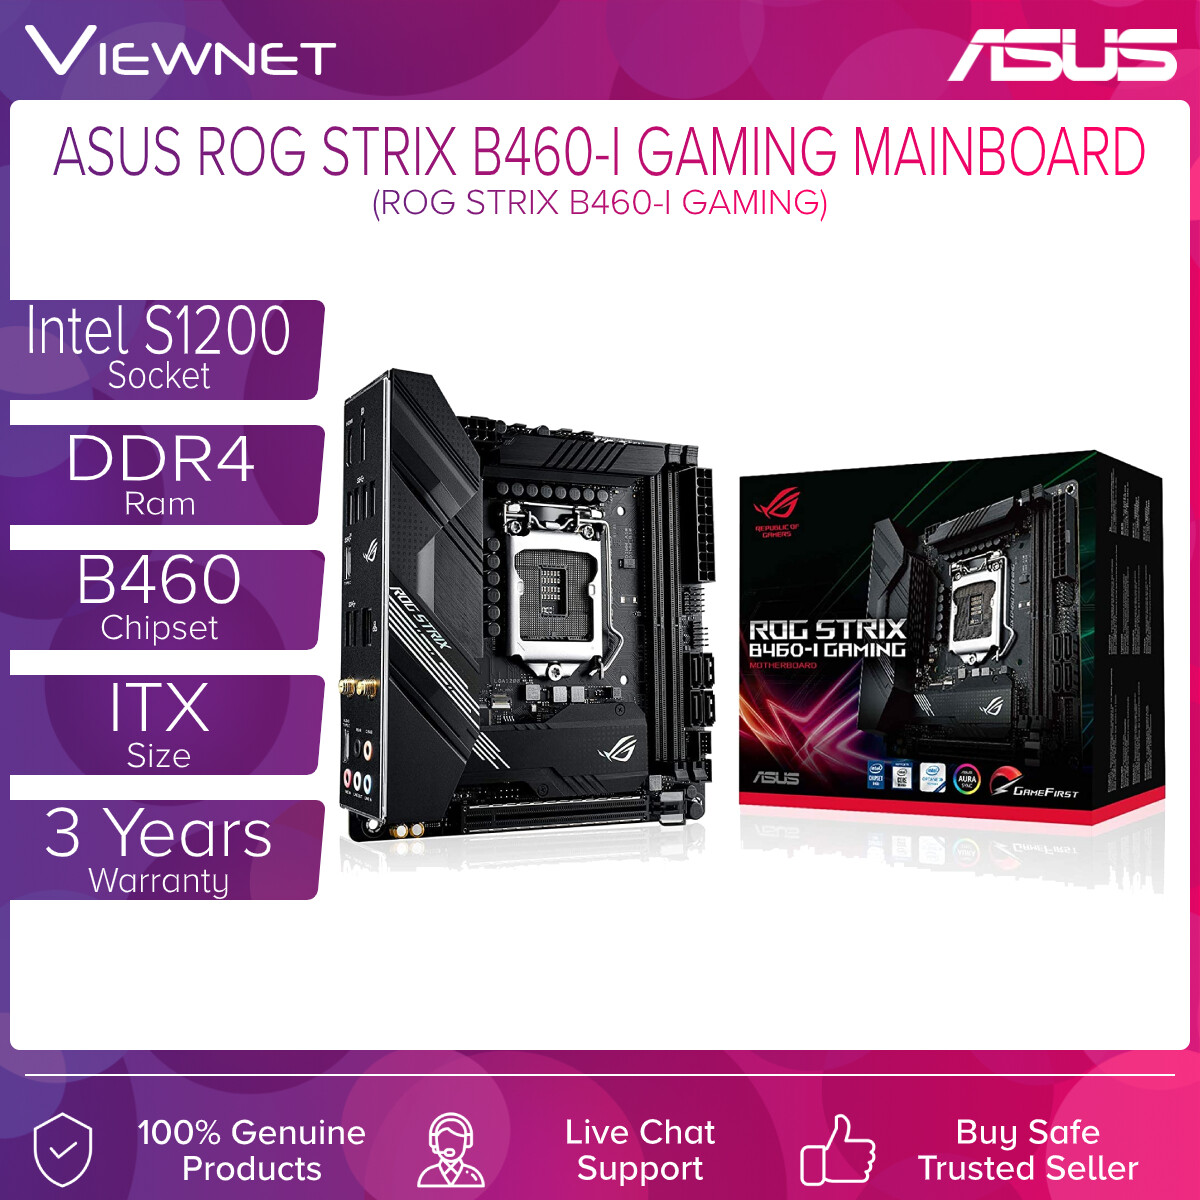 Asus ROG Strix B460-I Gaming motherboard features solid power delivery and effective cooling designed to handle the latest 10th Generation Intel Core processors, With its arresting futuristic aesthetic and intuitive ROG software